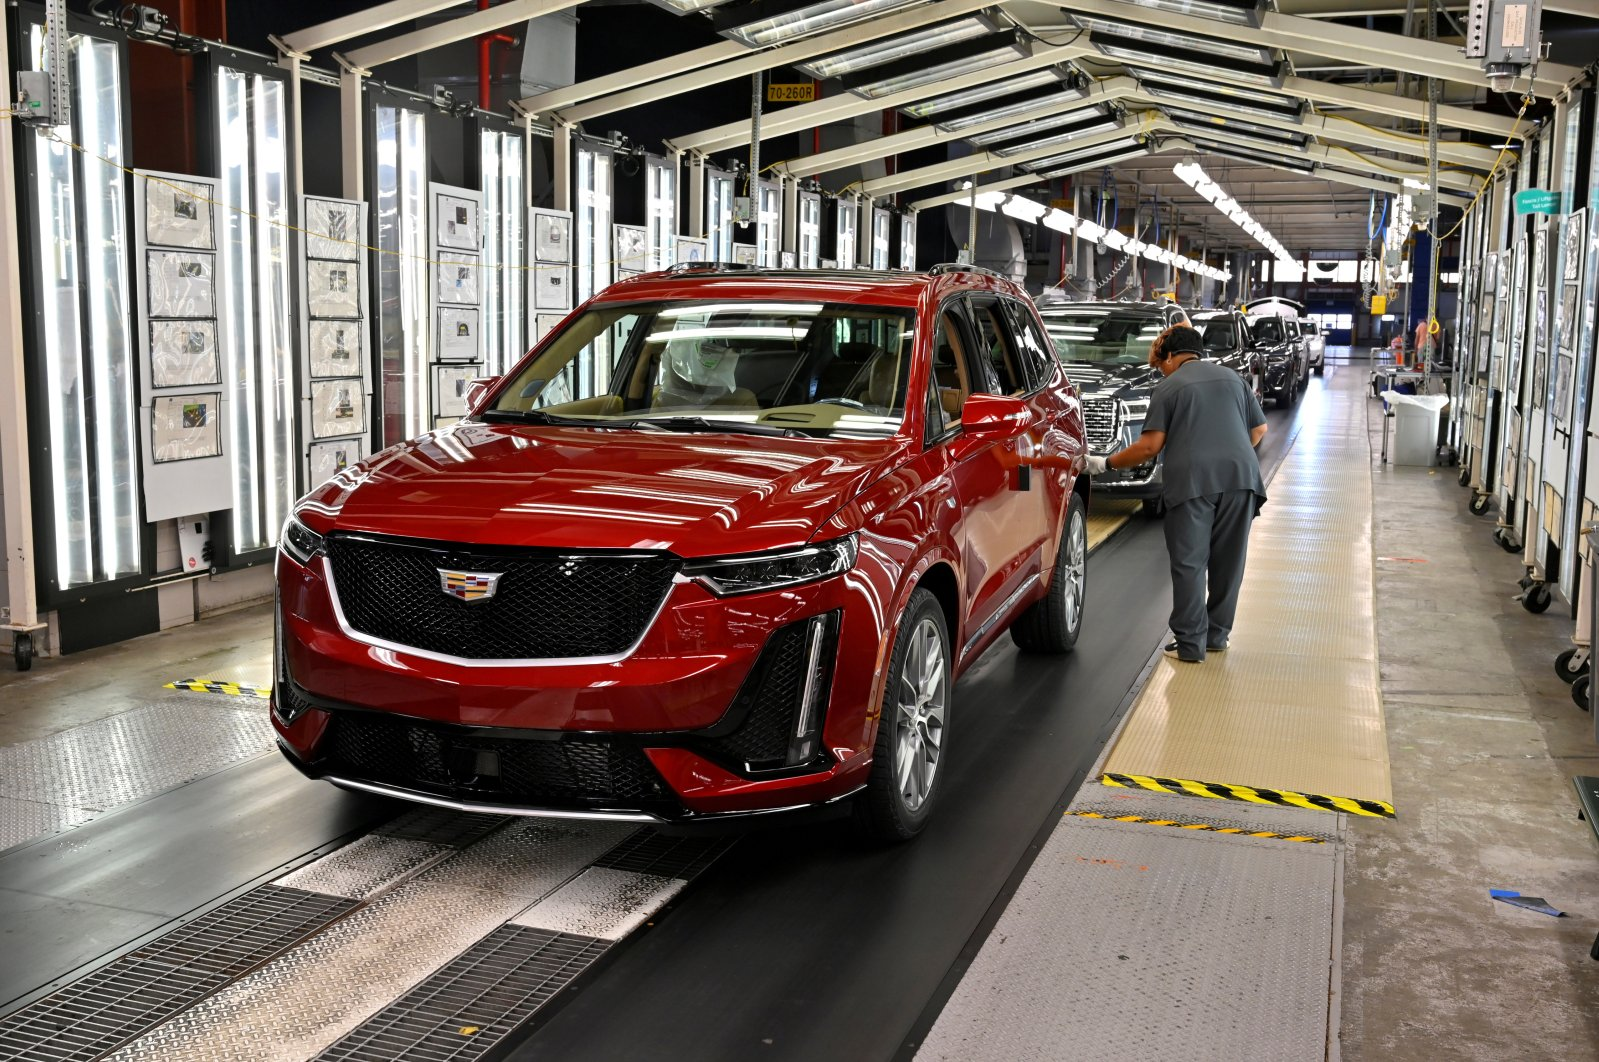 A final inspection is performed as the vehicles are ready to leave the assembly line at the General Motors (GM) manufacturing plant in Spring Hill, Tennessee, U.S., Aug. 22, 2019. ( Reuters Photo)